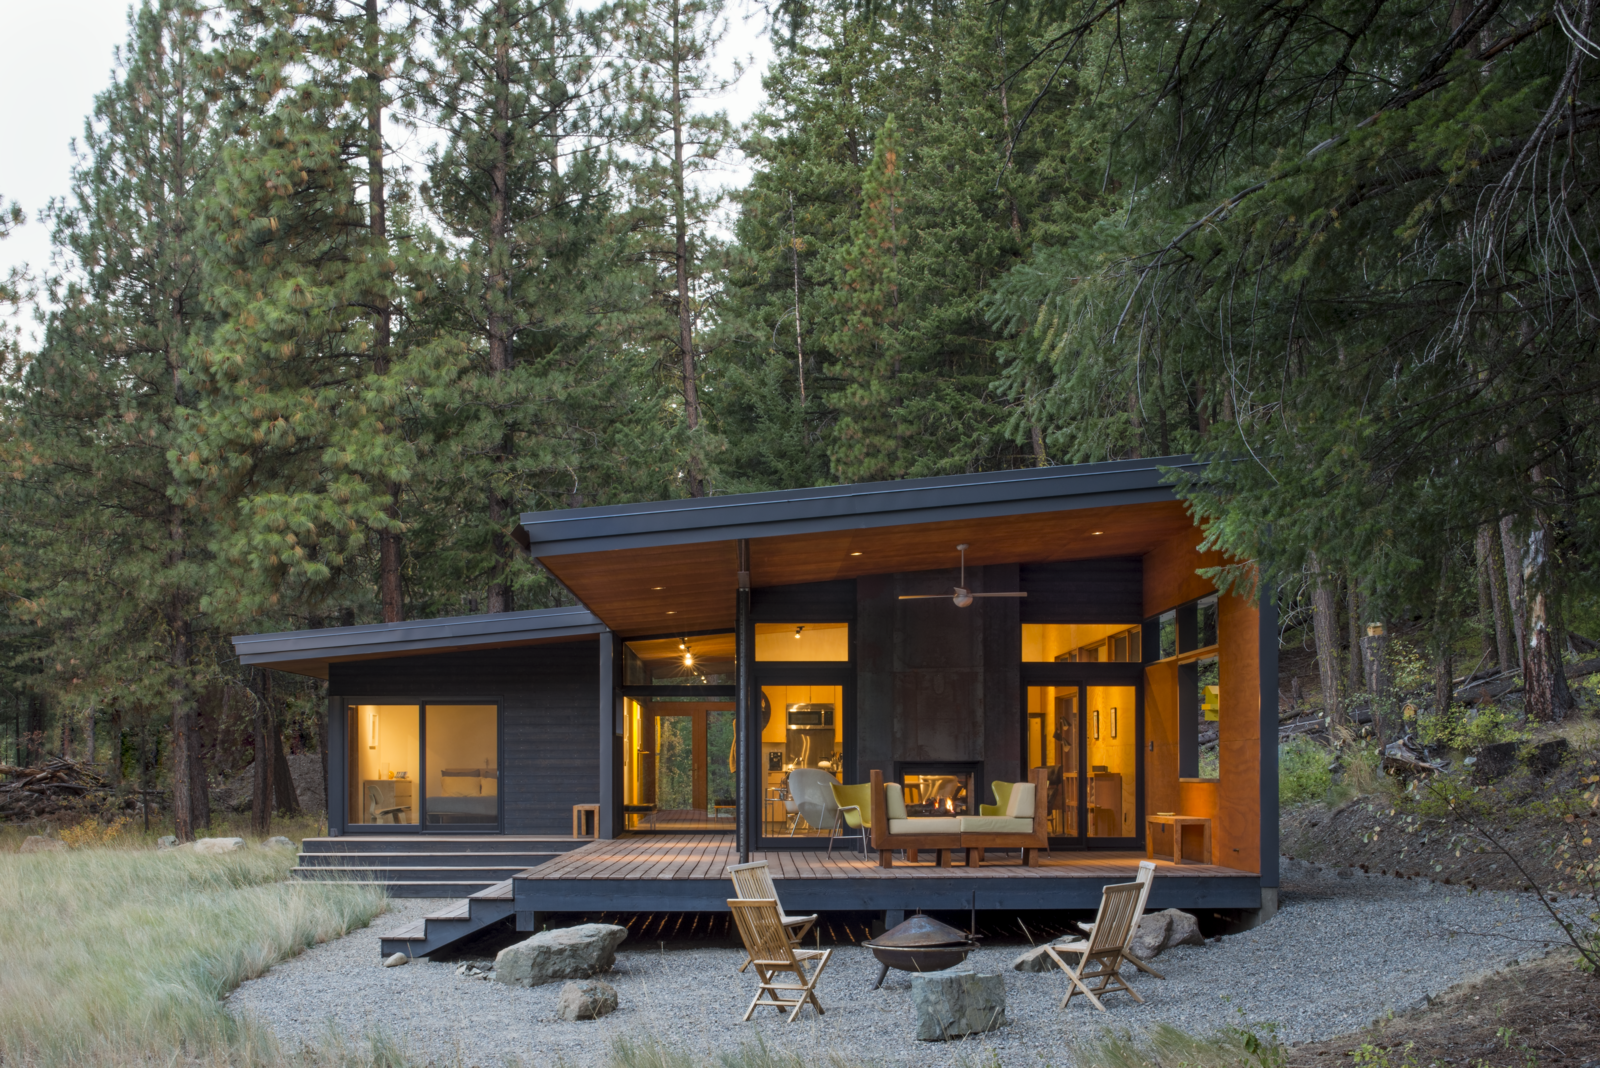 In Washington's Methow Valley, a modern cabin with an outdoor living room allows views of the surrounding woodland and meadow to perforate its volume.   By day, the Chechaquo Lot 6 cabin gives the impression of floating in a forest clearing; by night, its windows glow against the wooded darkness. From all vantage points, the landscape permeates this 1,000-square-foot cabin, designed for two outdoor enthusiasts and tucked at the toe of a dramatic slope in Winthrop, Washington. Tagged: Exterior, Cabin Building Type, Wood Siding Material, and Glass Siding Material.  Photo 2 of 10 in A Lean Cabin in Washington Dismantles the Indoor/Outdoor Divide